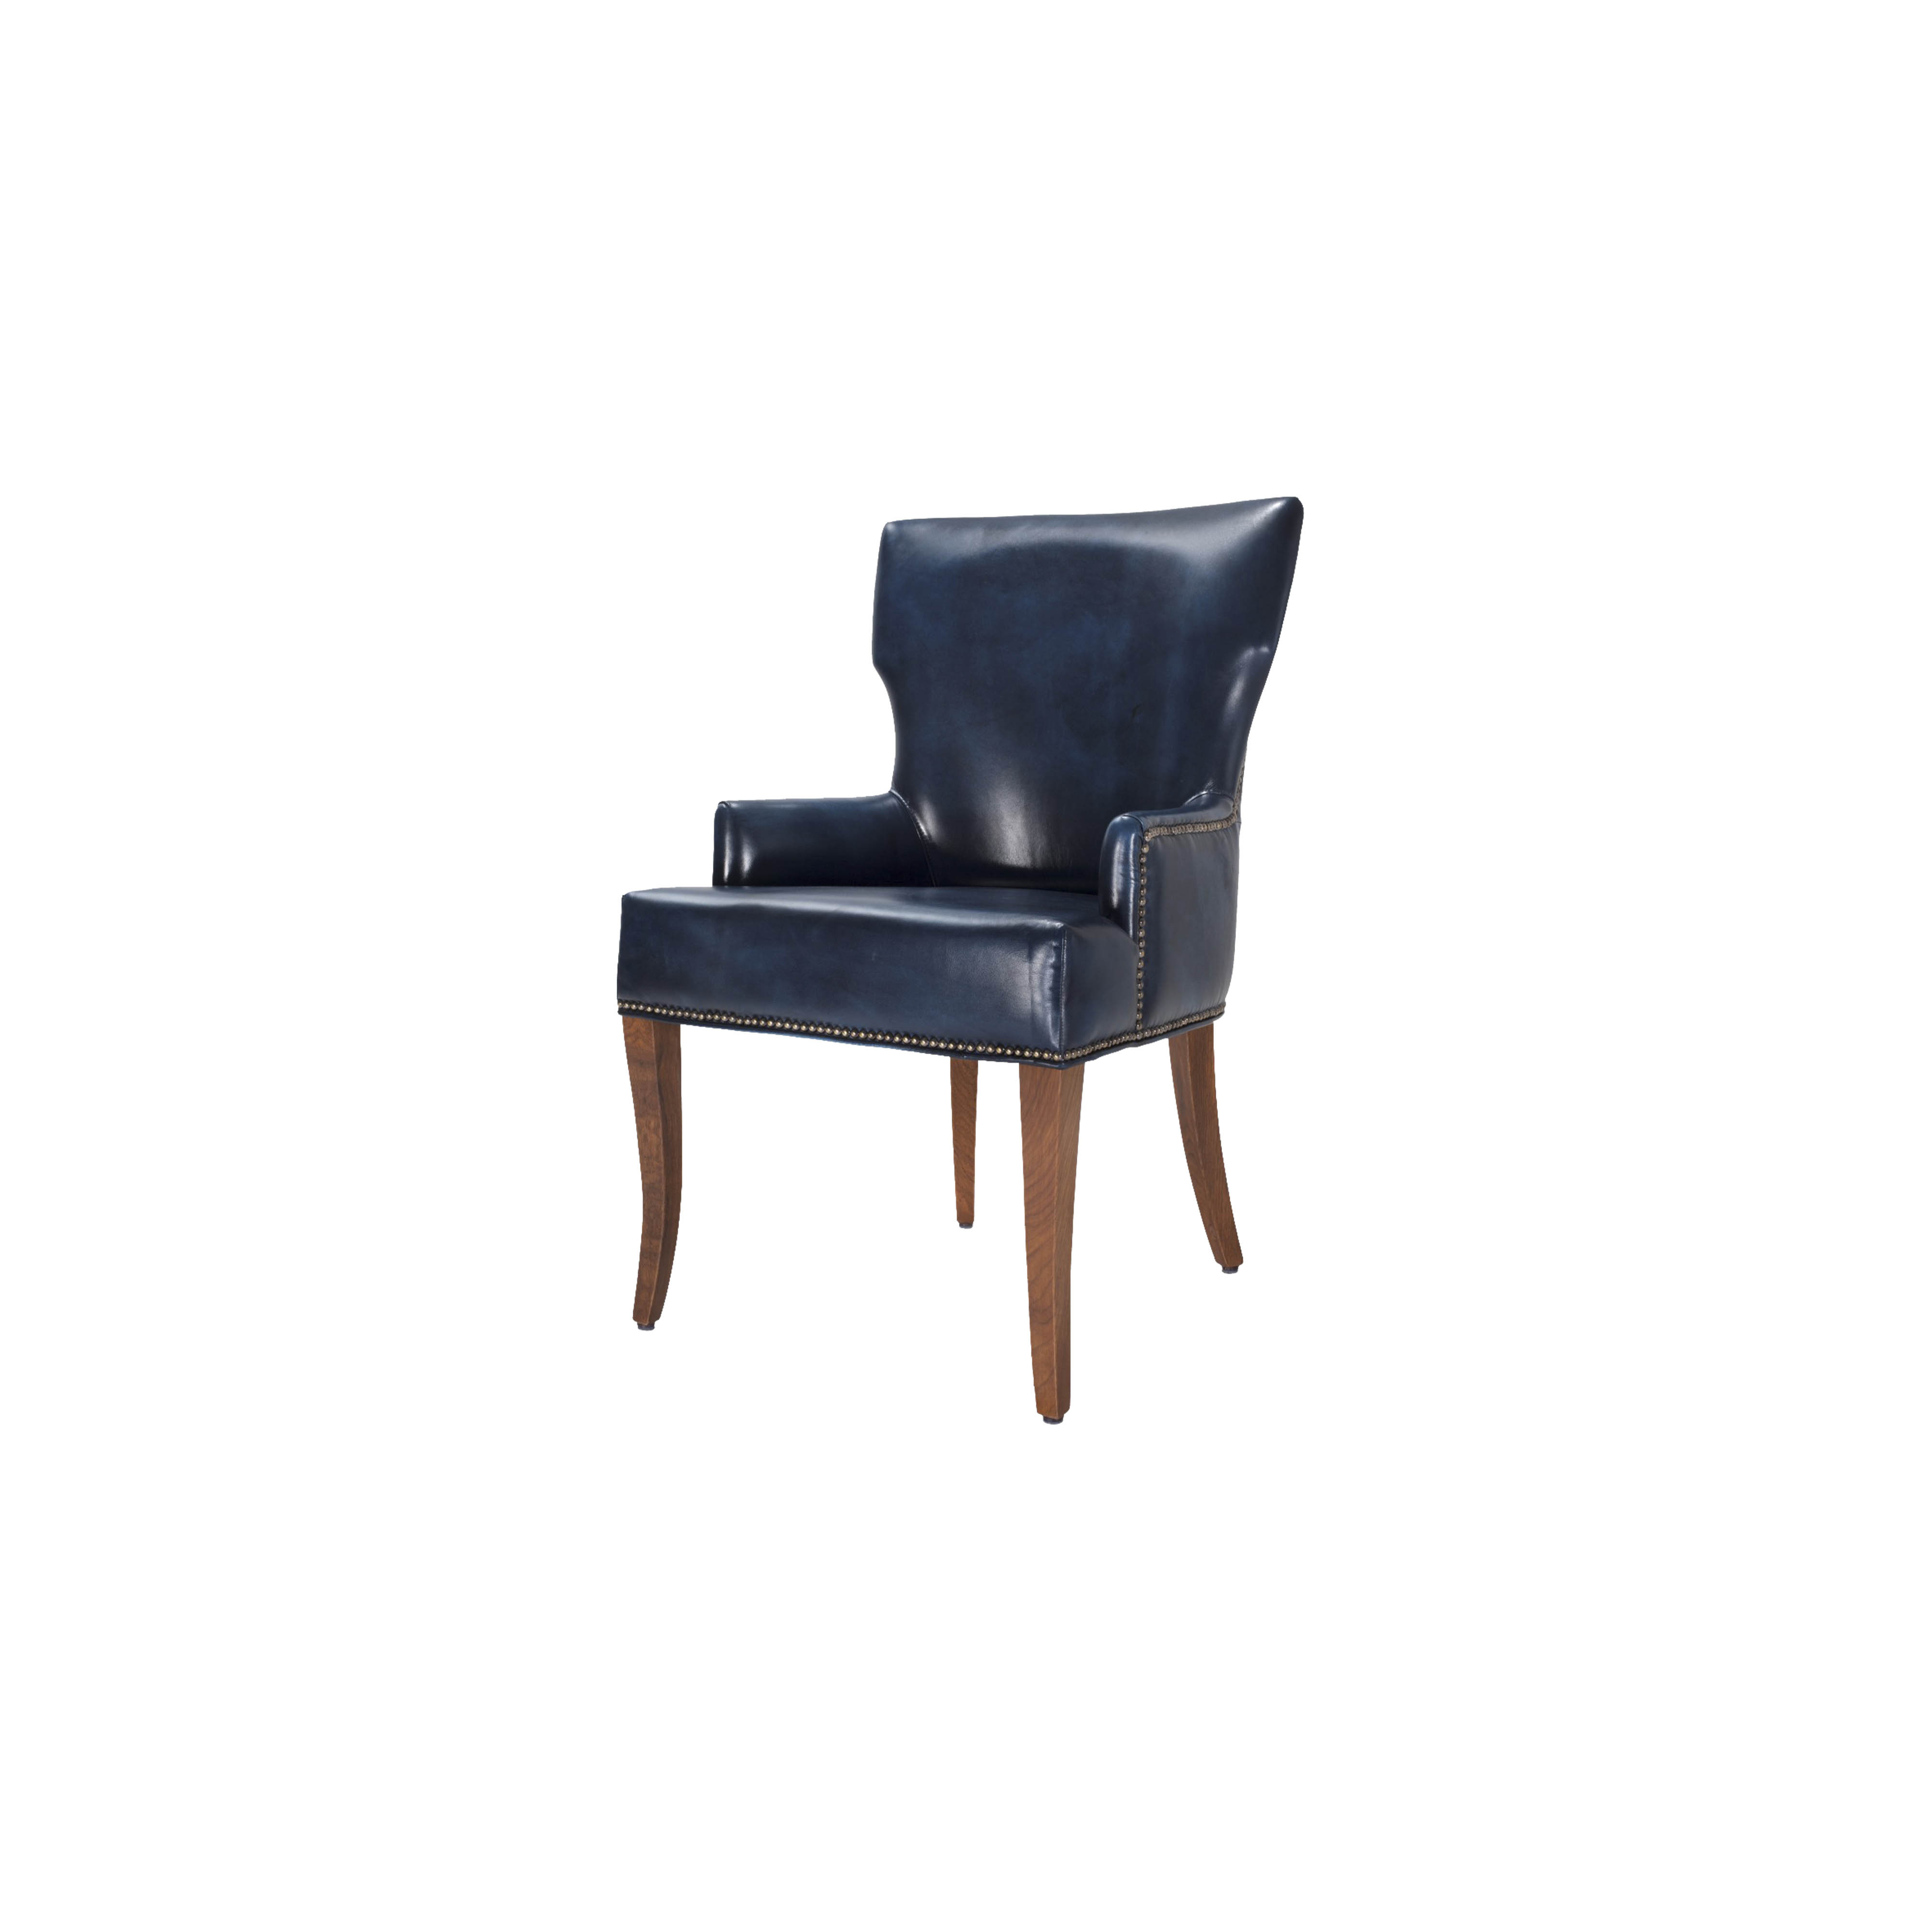 Bluford dining chair